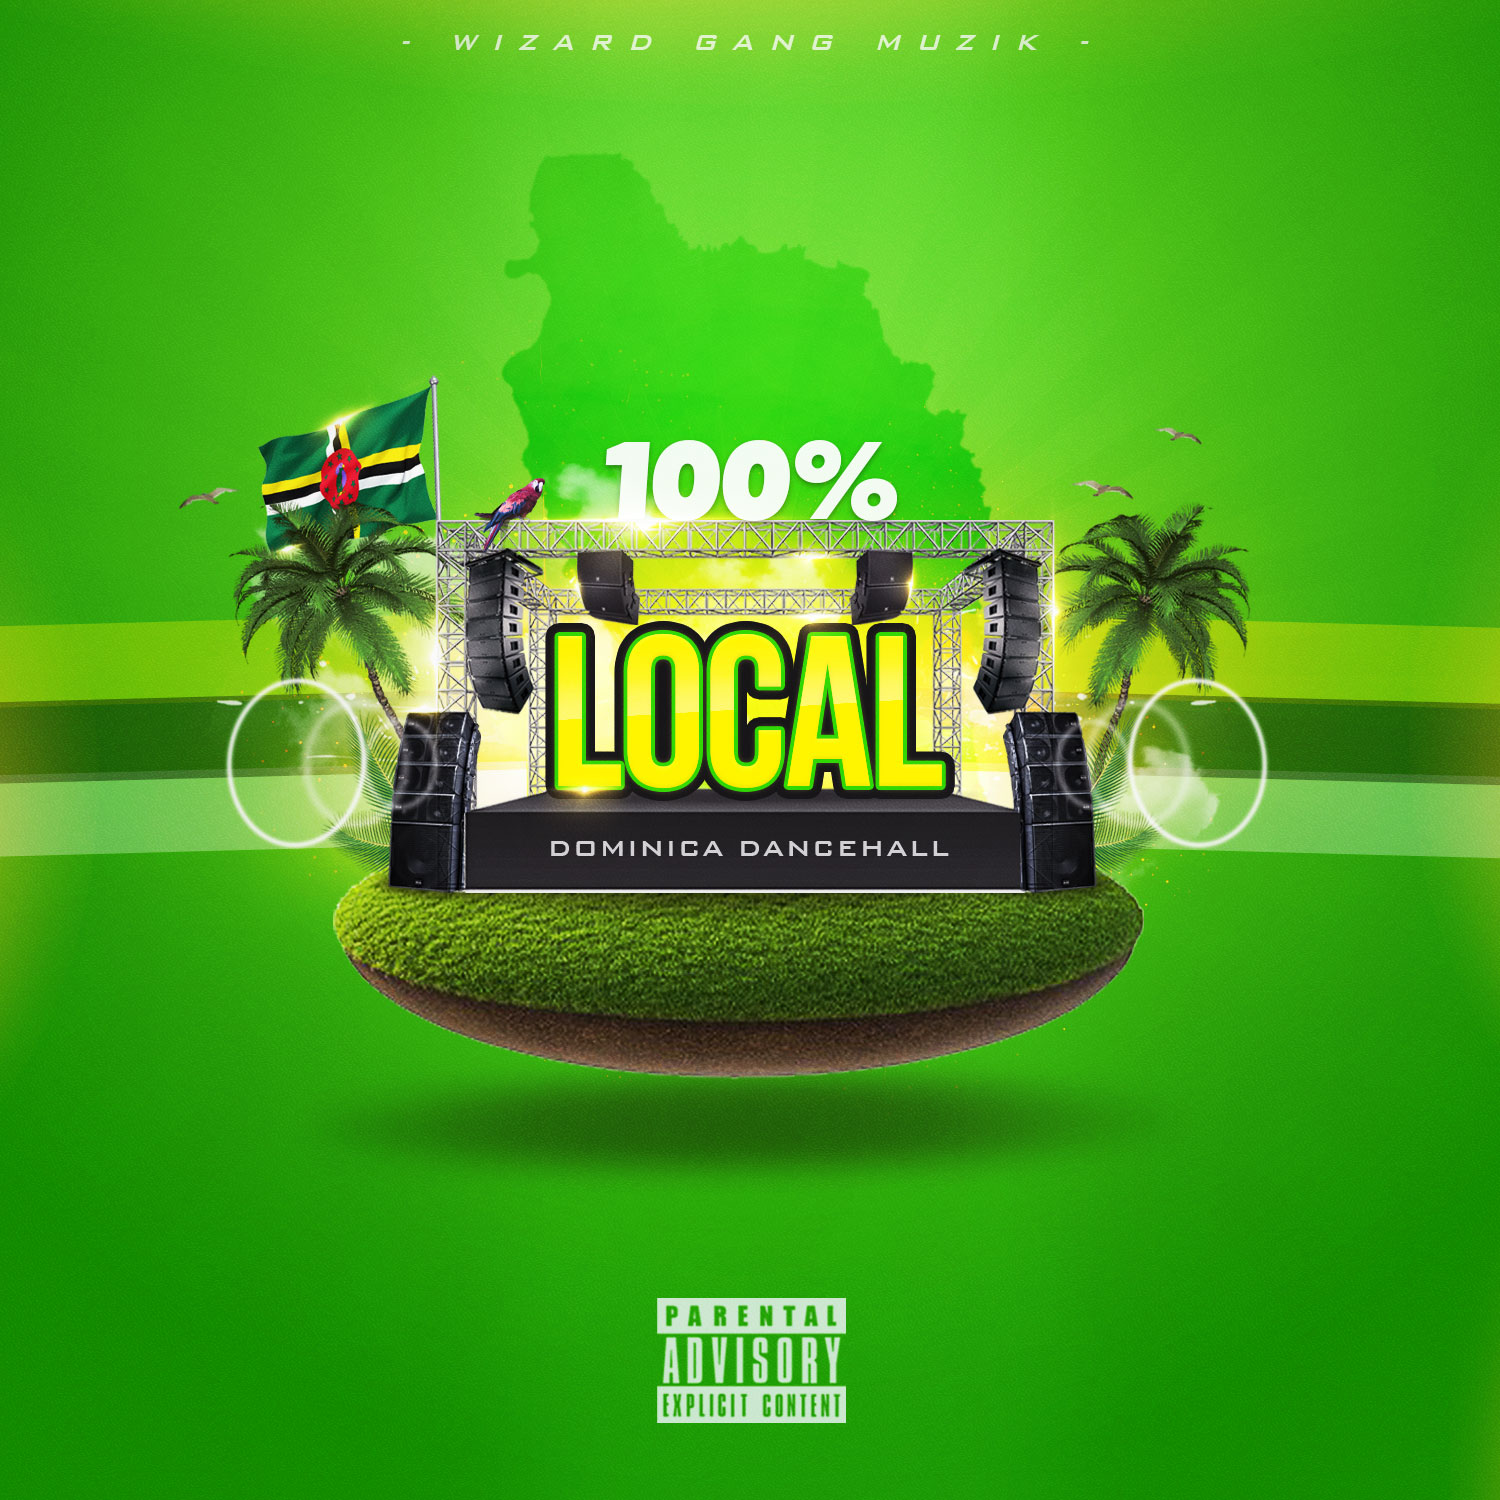 Dj Wizz767 – 100% Local (Dominica Dancehall Mix)